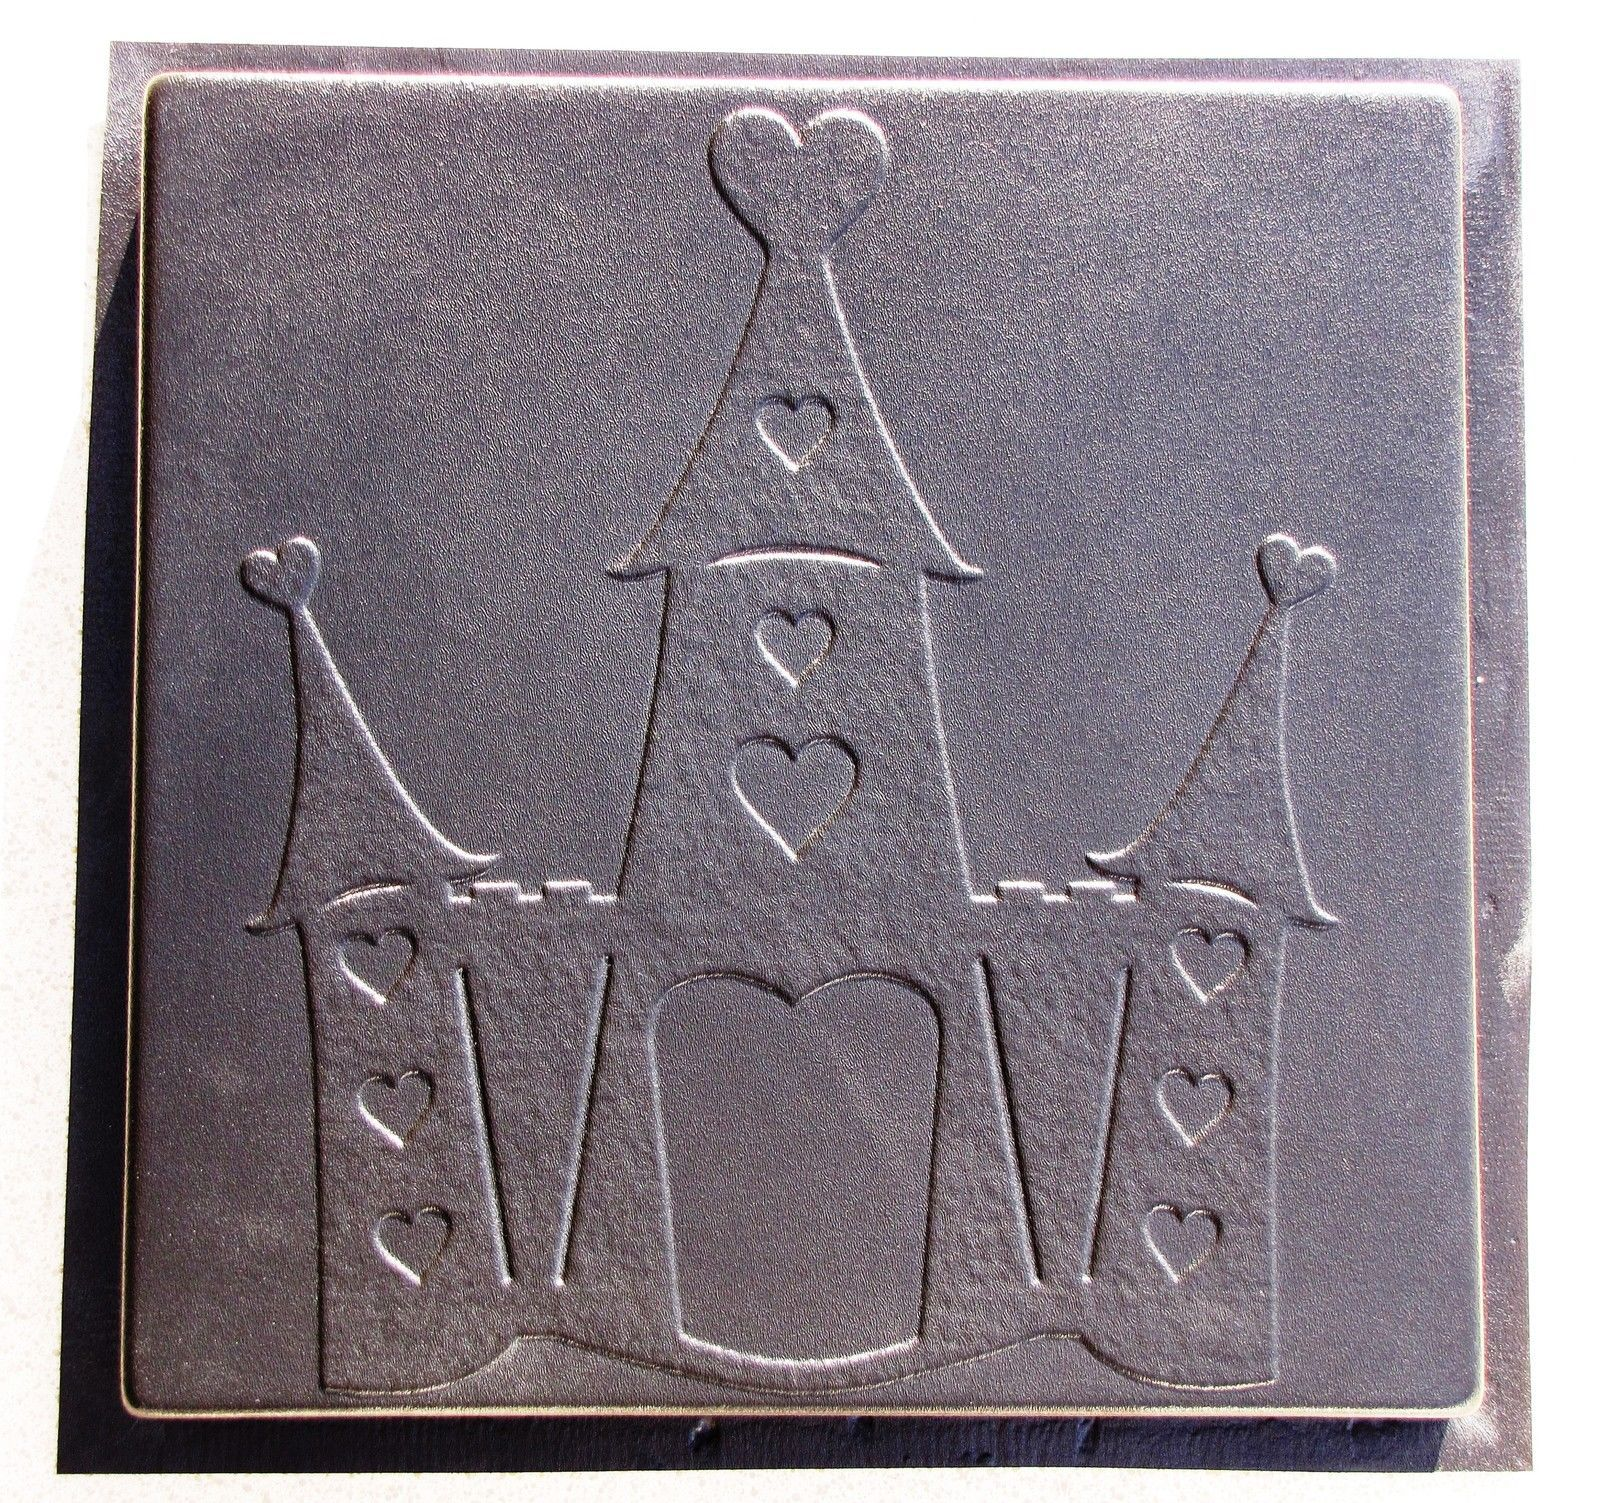 Whimsical Castle Stepping Stone Mold #2 Concrete Makes 18x18 Stones For $2 Each